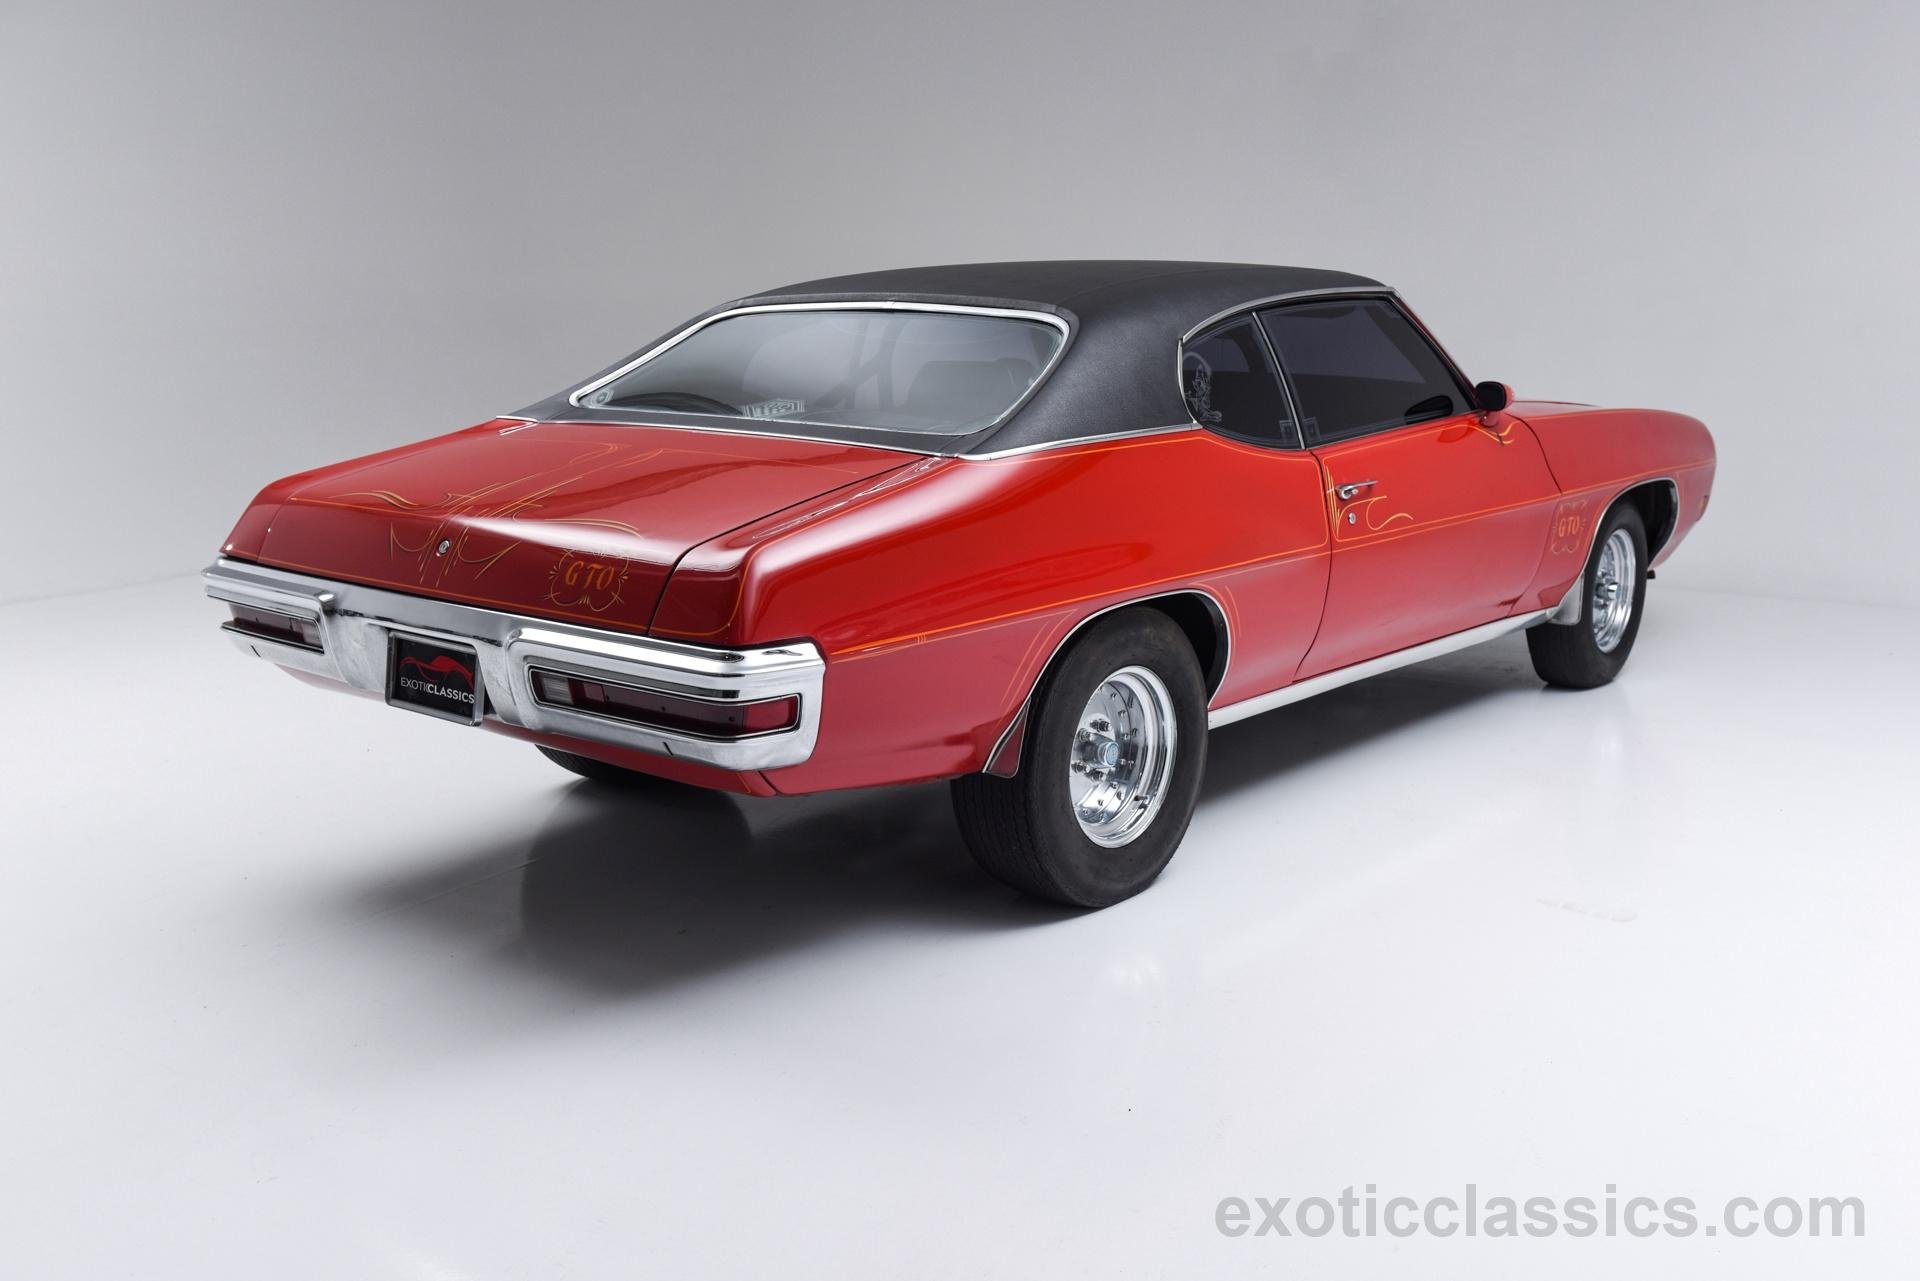 1970 PONTIAC GTO coupe classic cars red wallpaper 1920x1281 711249 1920x1281